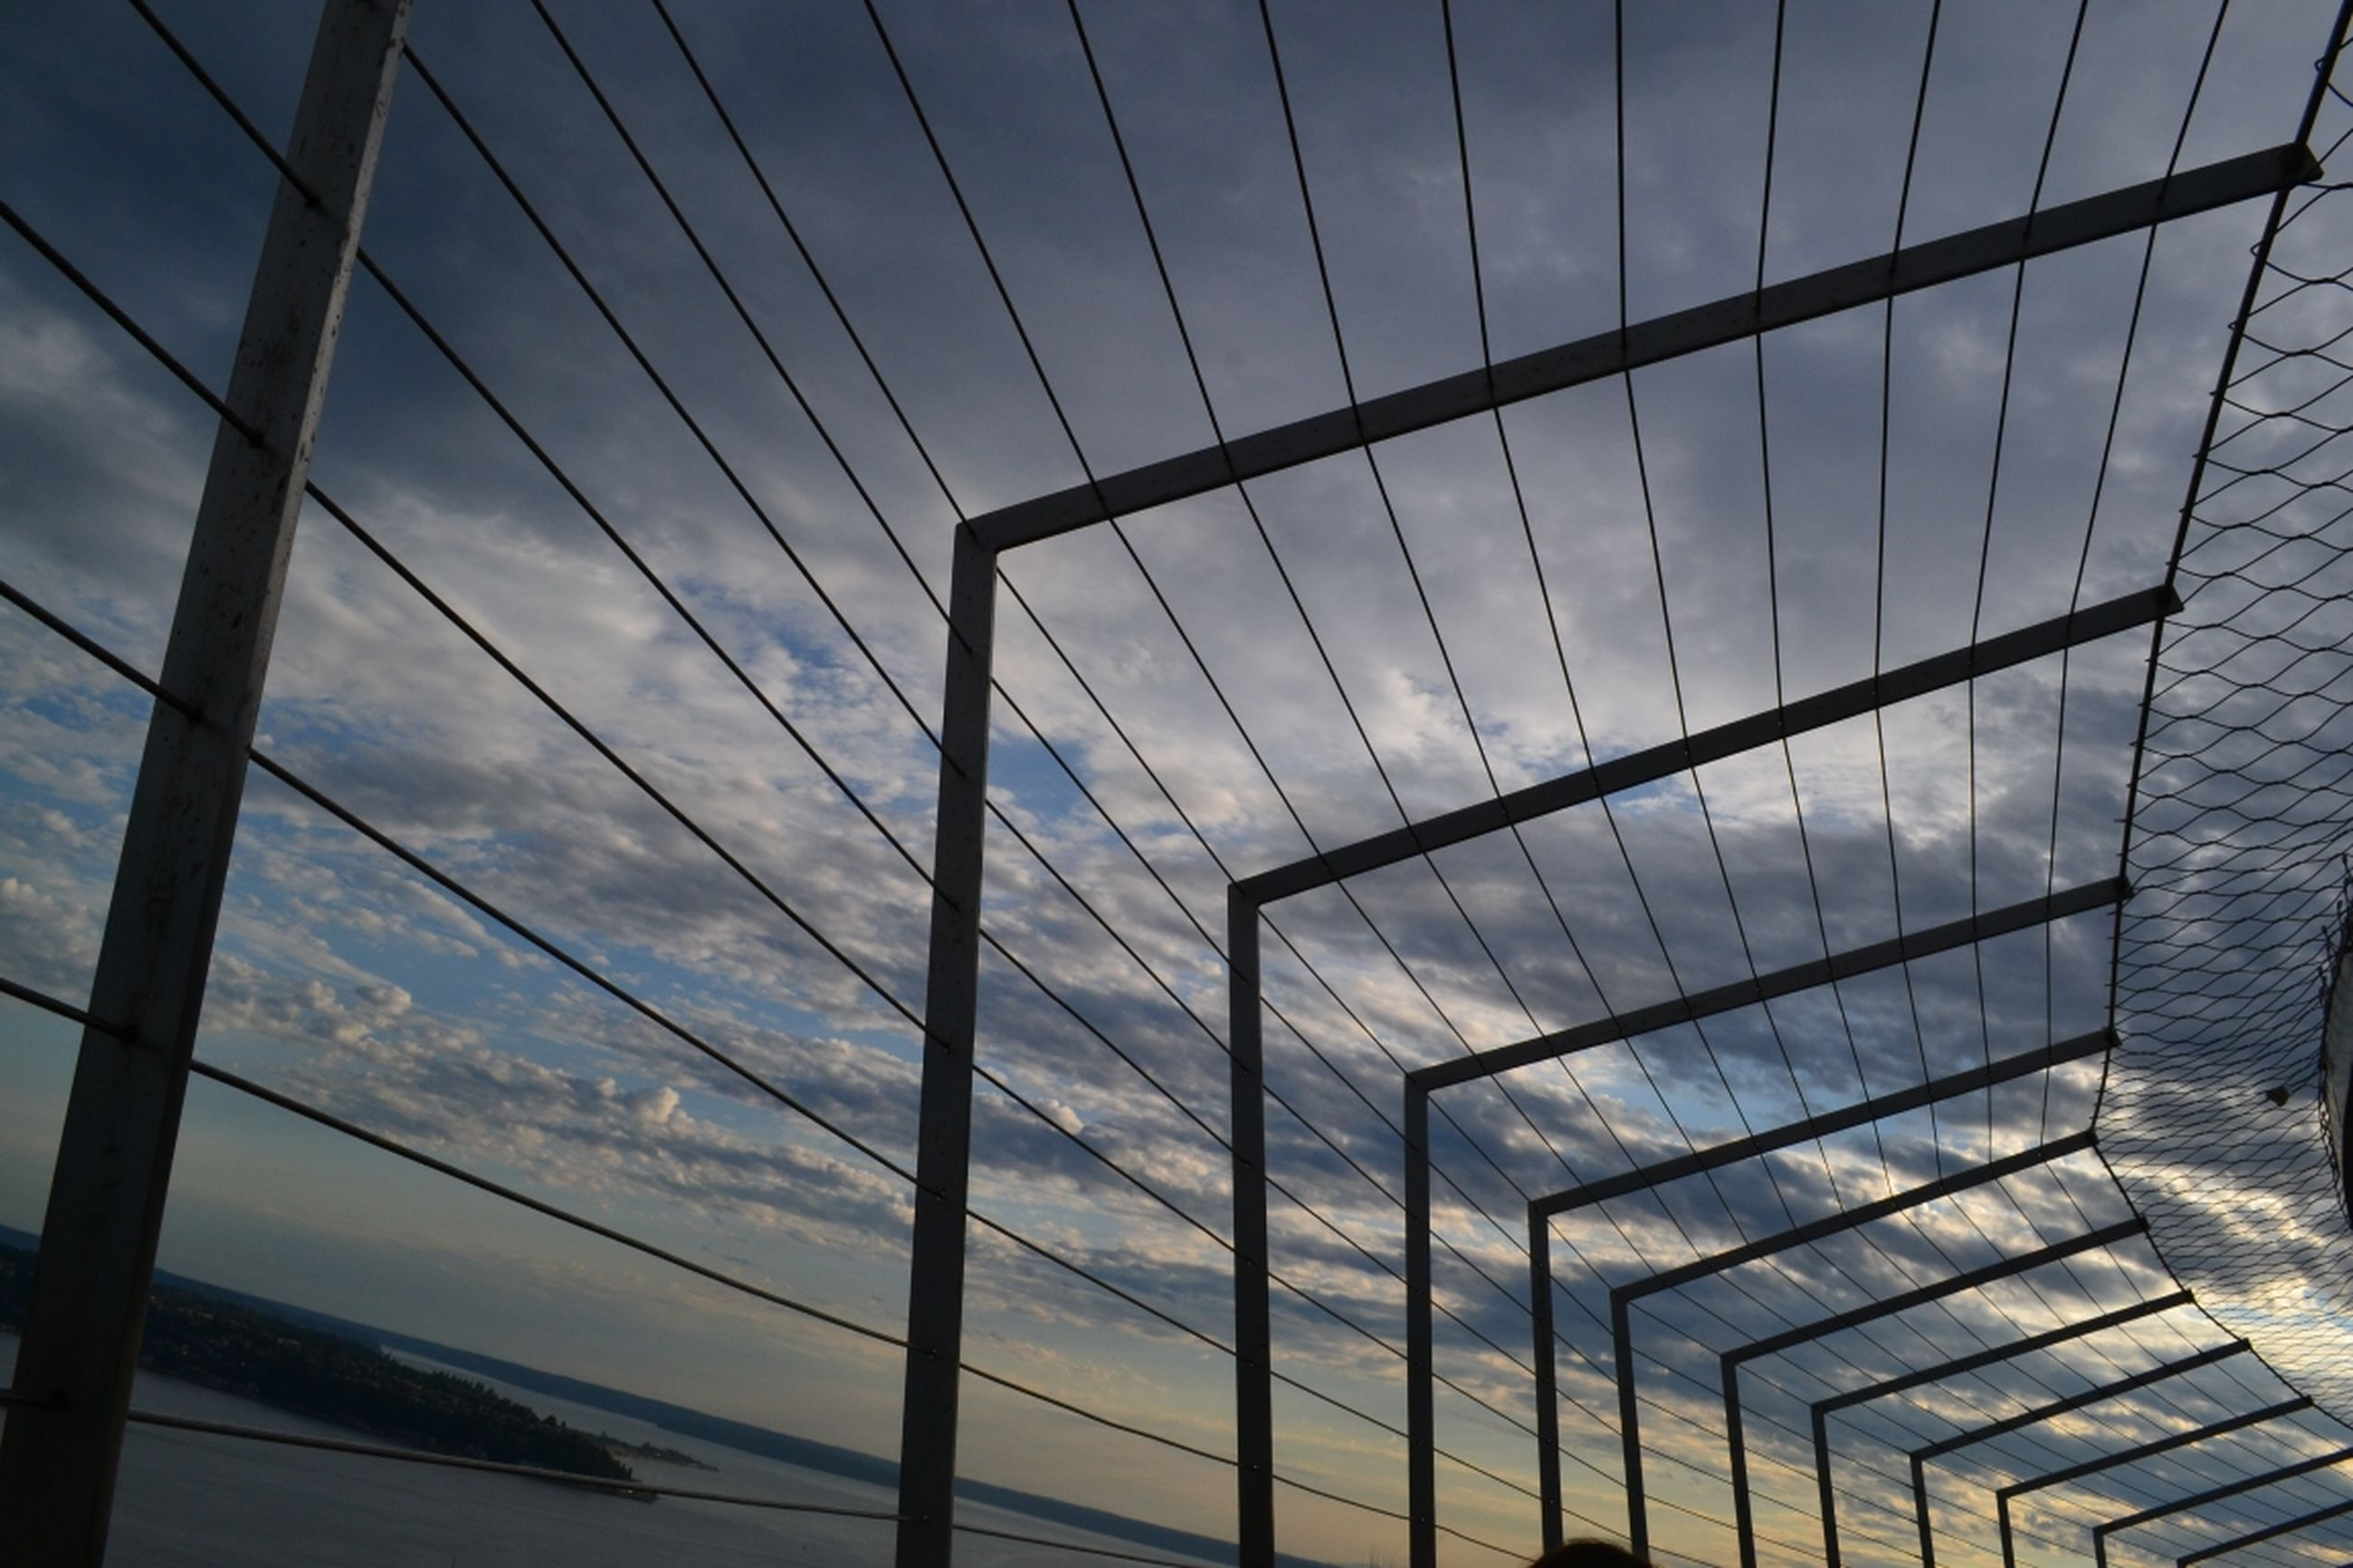 built structure, architecture, sky, connection, reflection, water, low angle view, cloud - sky, day, glass - material, indoors, no people, modern, bridge - man made structure, railing, sea, cloud, building exterior, transportation